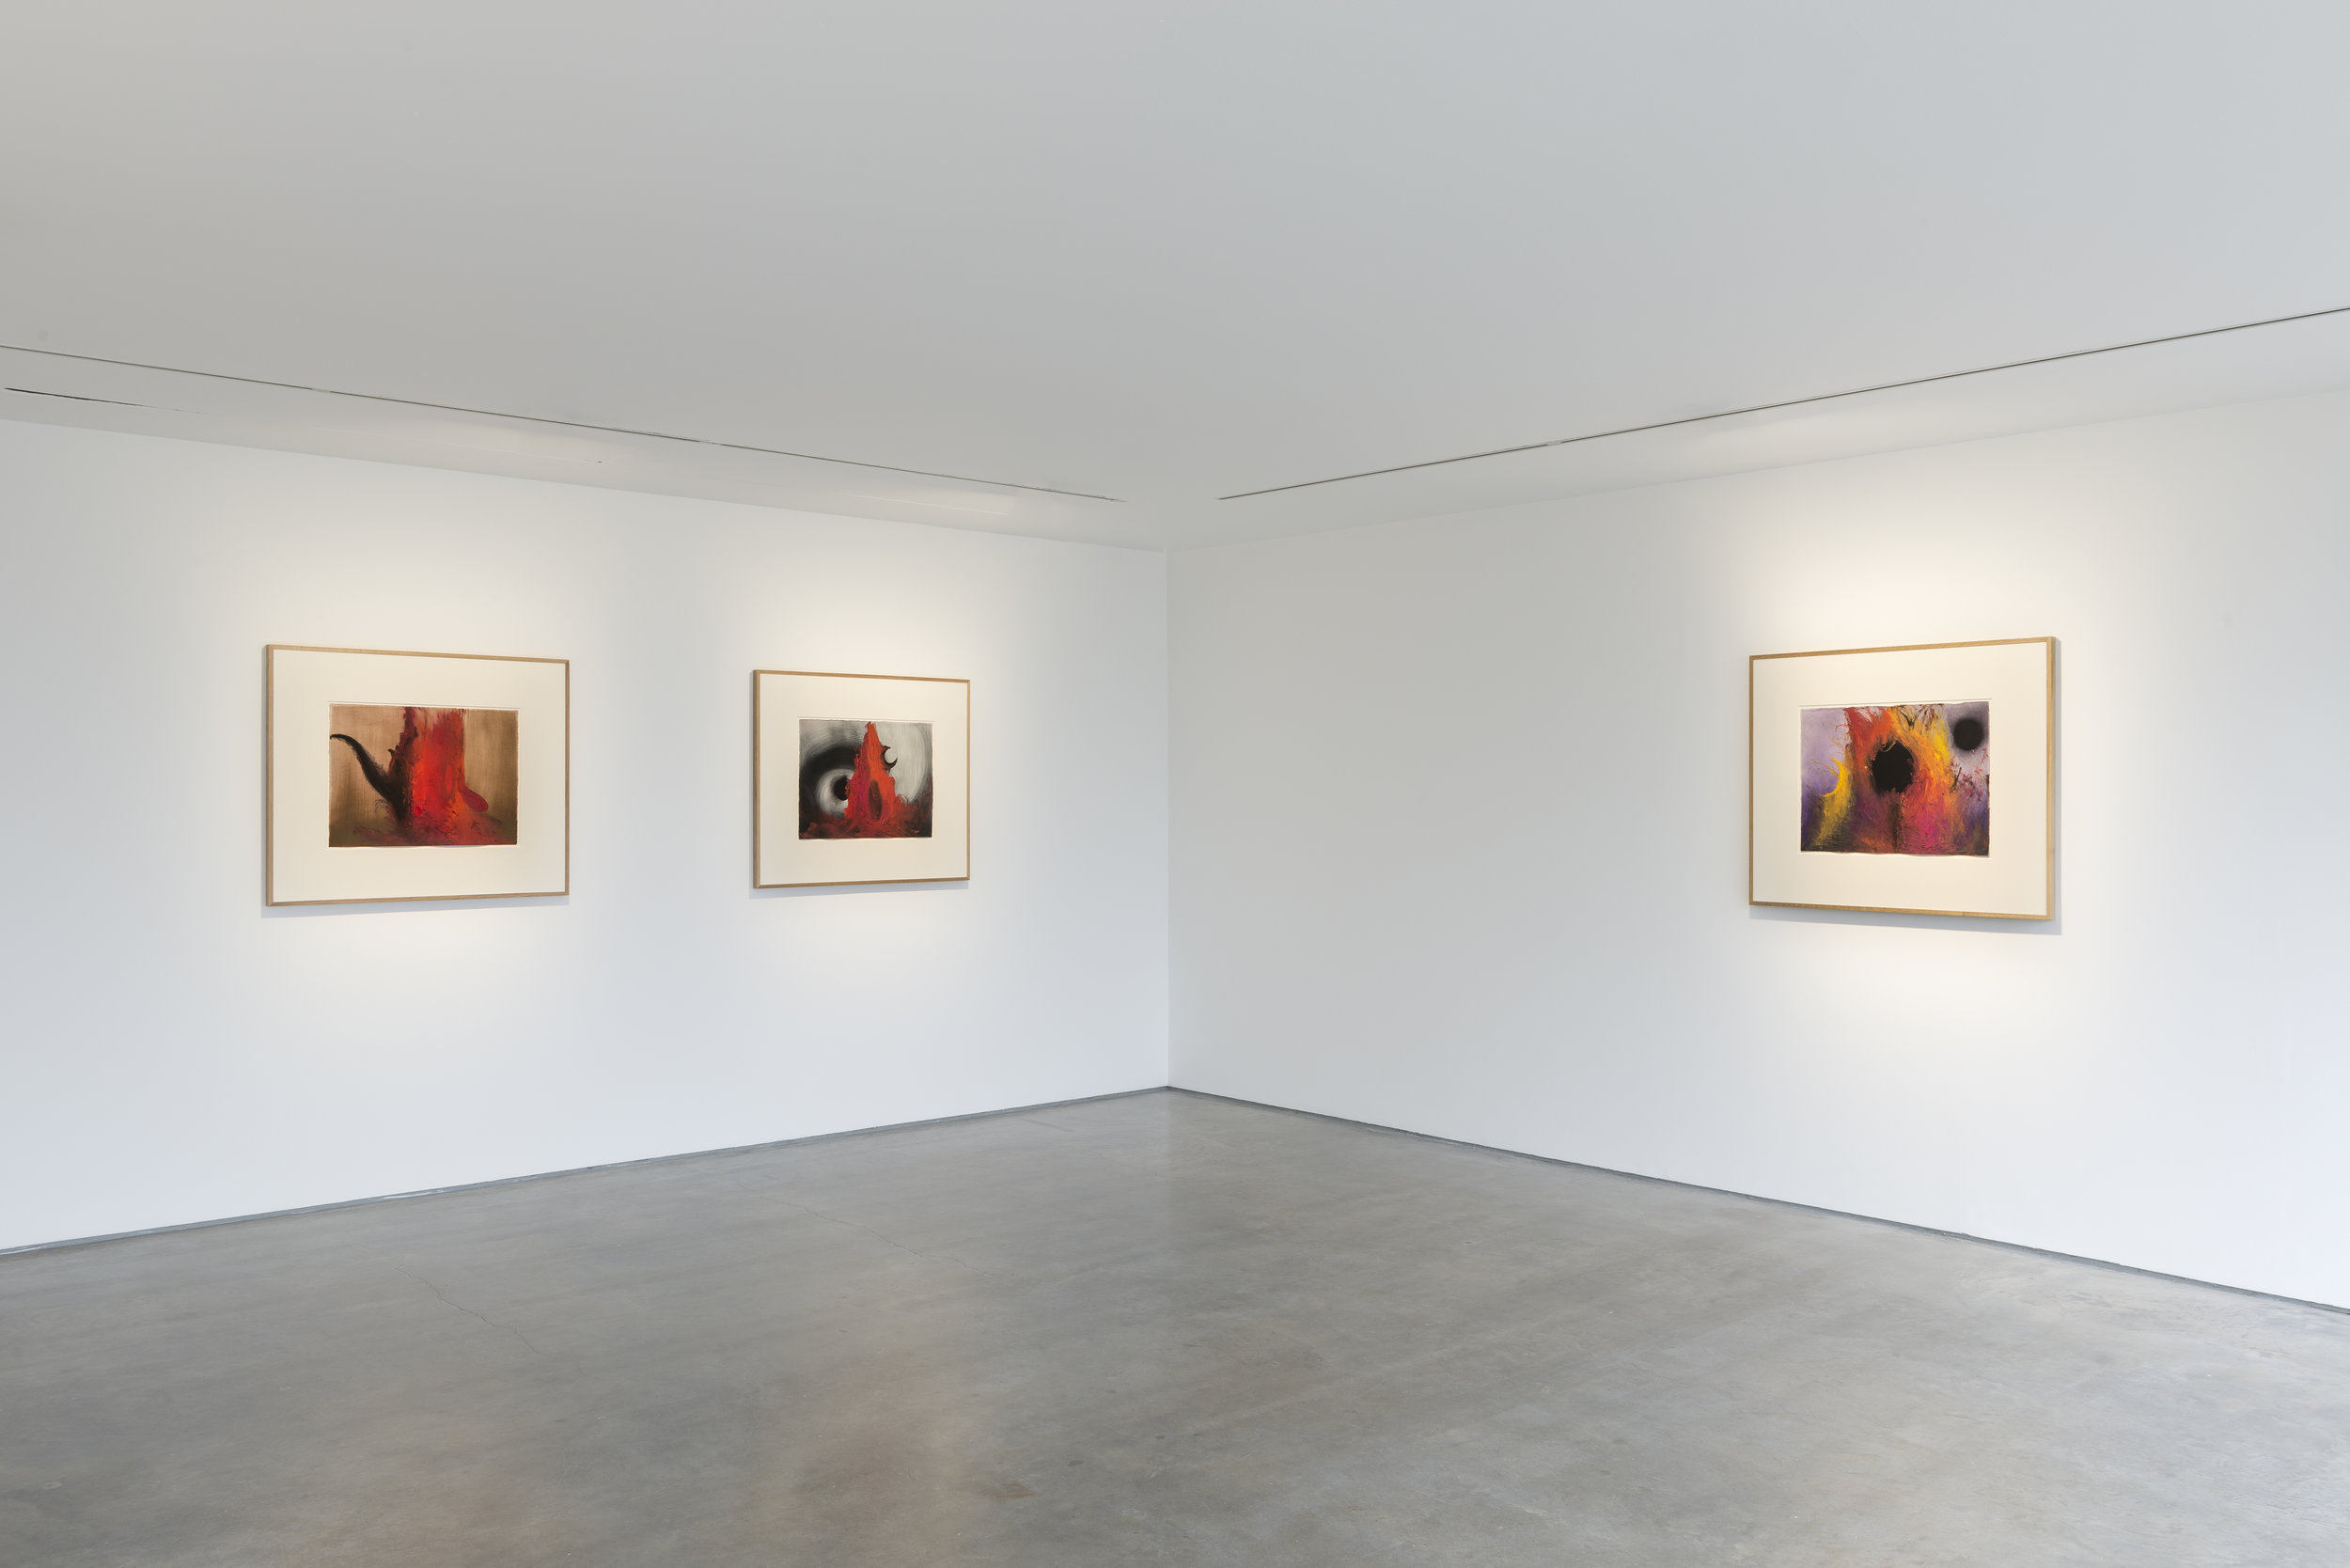 Anish Kapoor, Installation view, Lisson Gallery London, 2017, Photo by Dave Morgan © Anish Kapoor; Courtesy Lisson Gallery